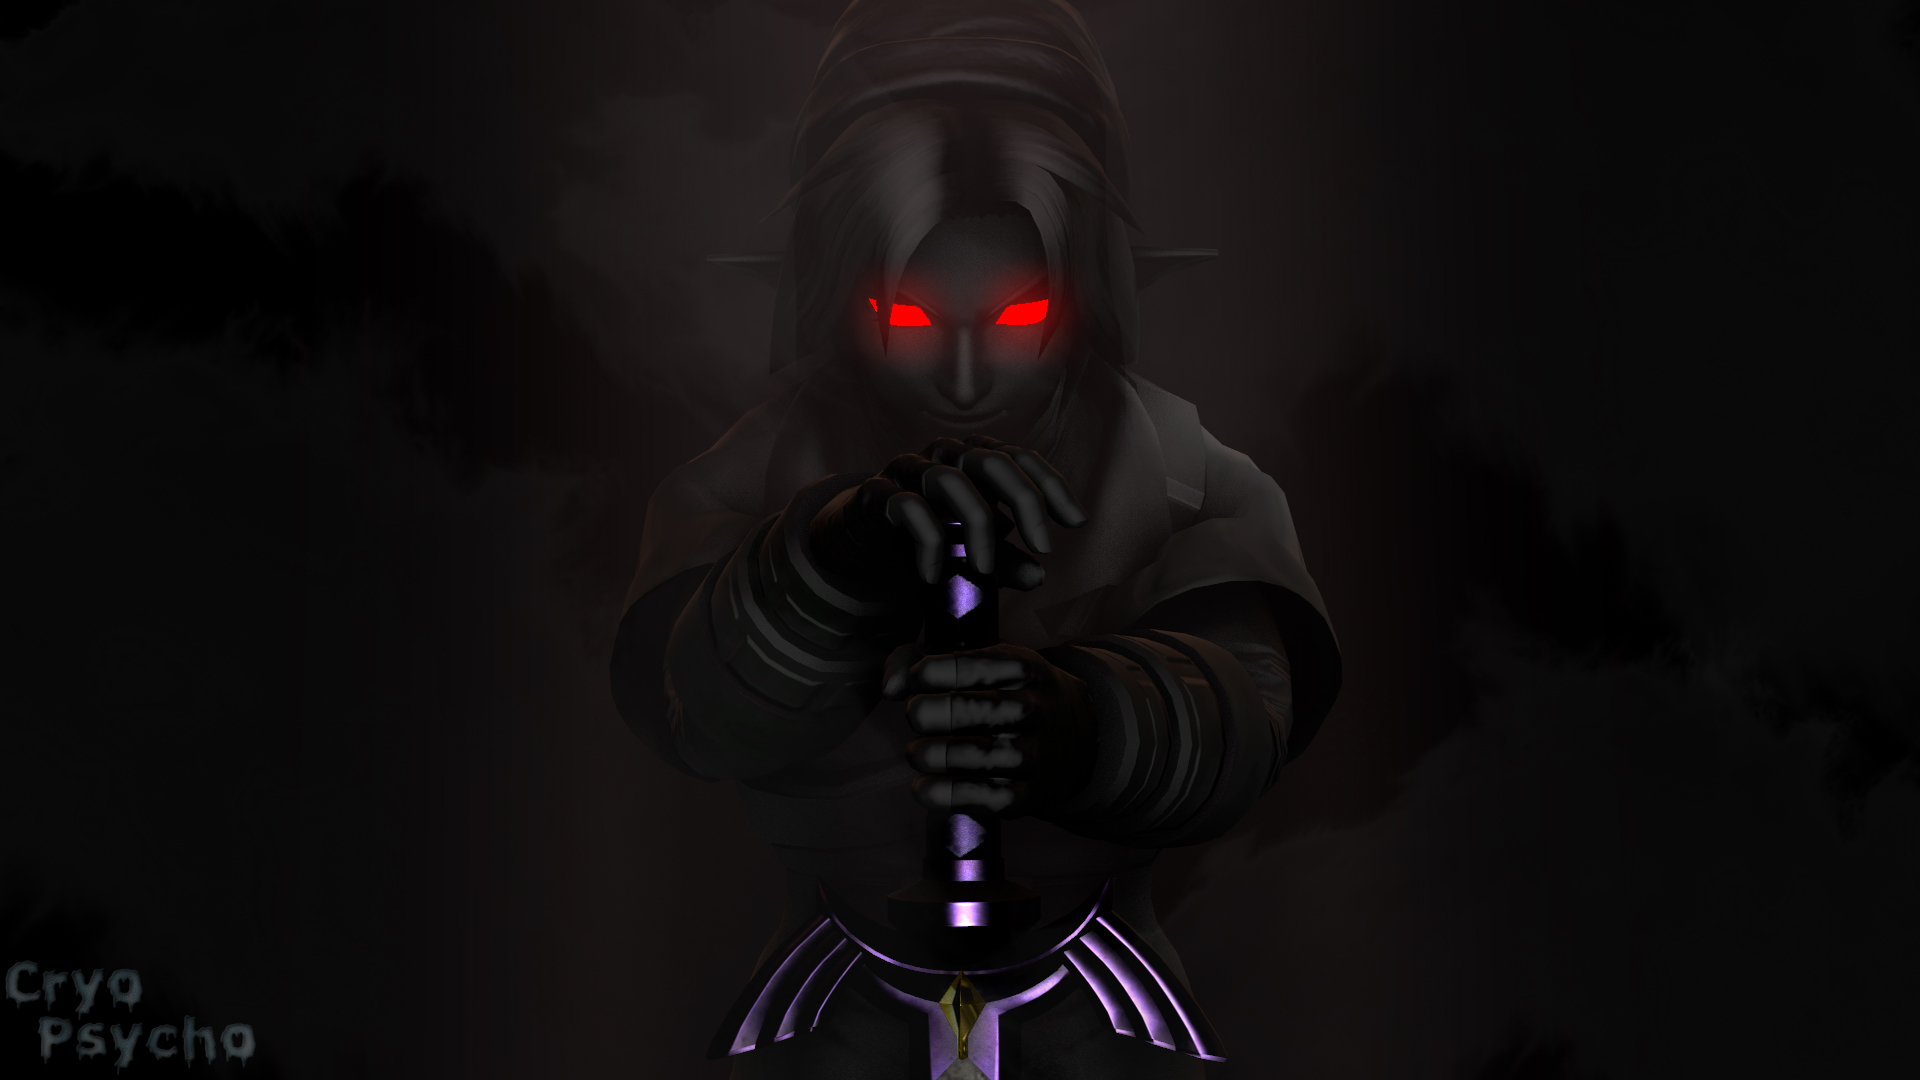 Dark Link Wallpaper Wallpaper By Cryo Psycho On Deviantart